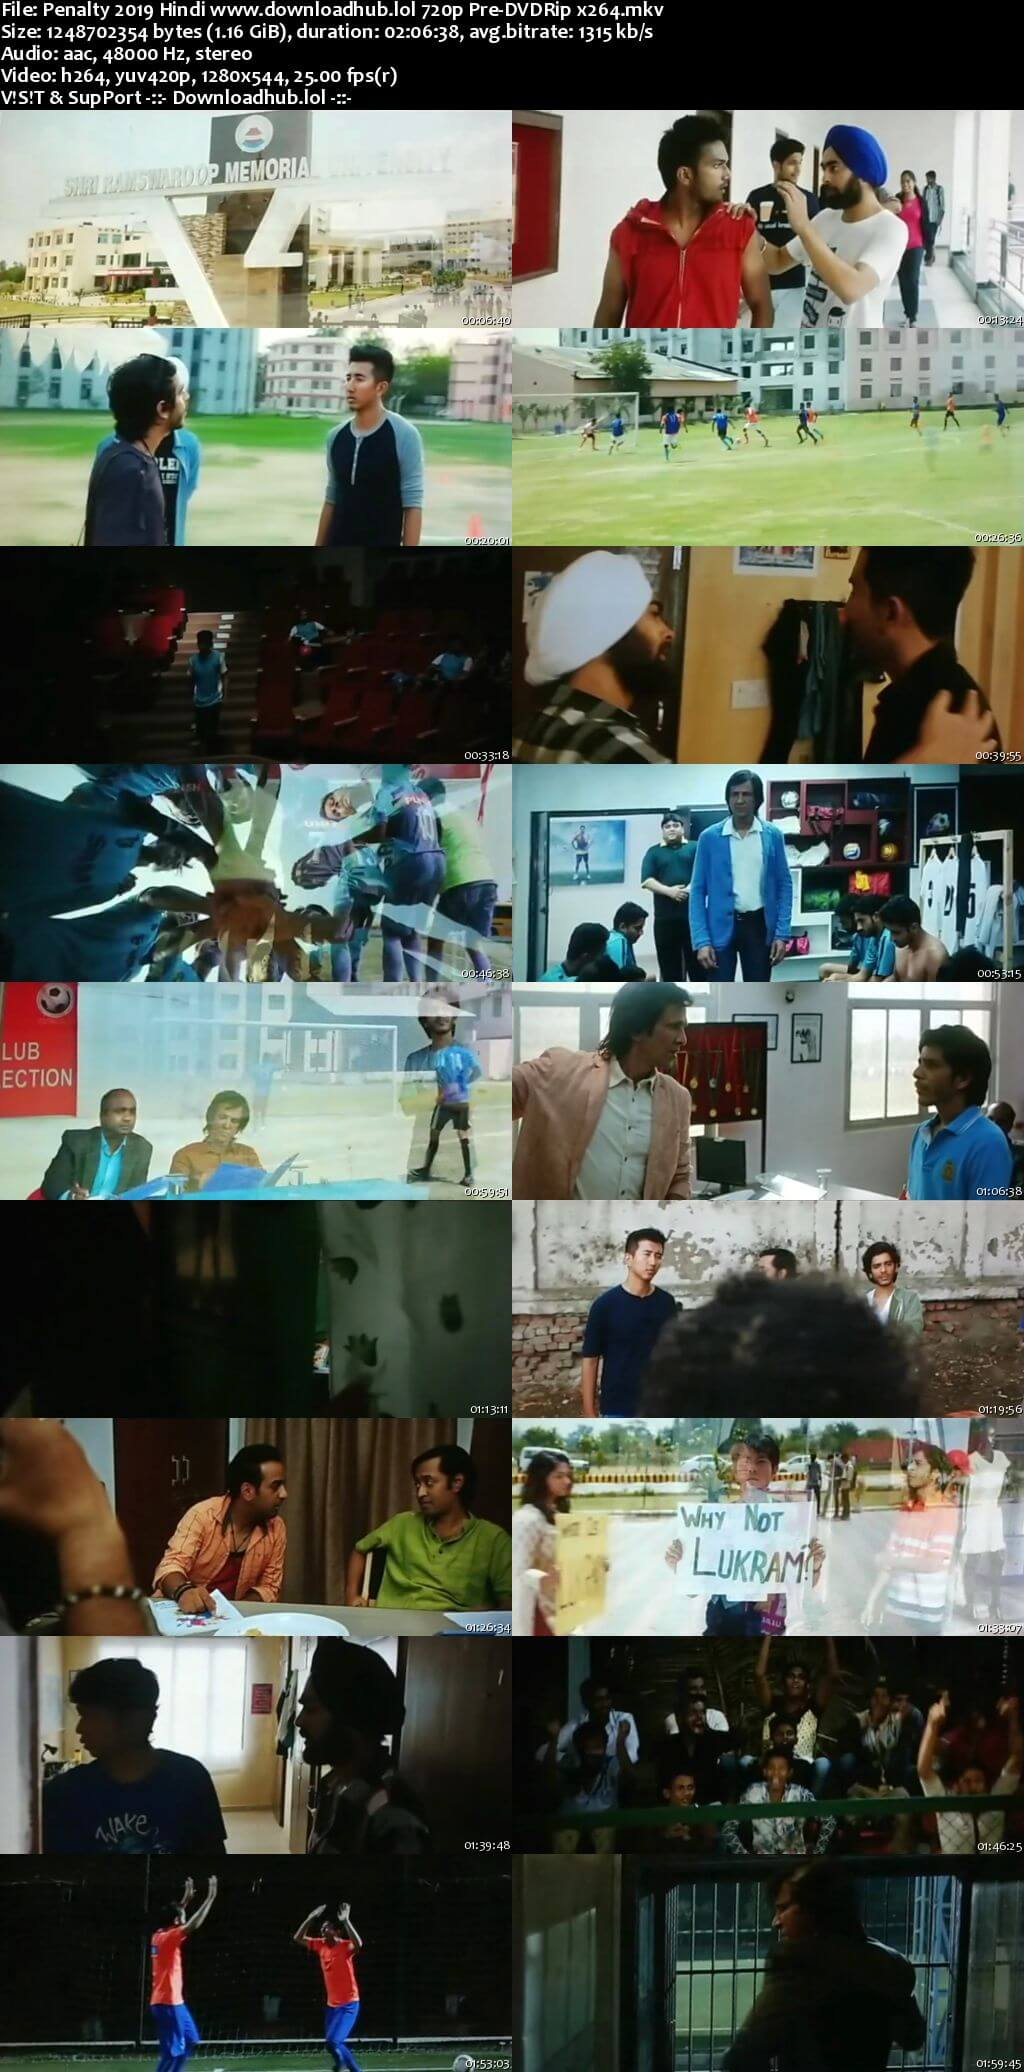 Penalty 2019 Hindi 720p Pre-DVDRip x264